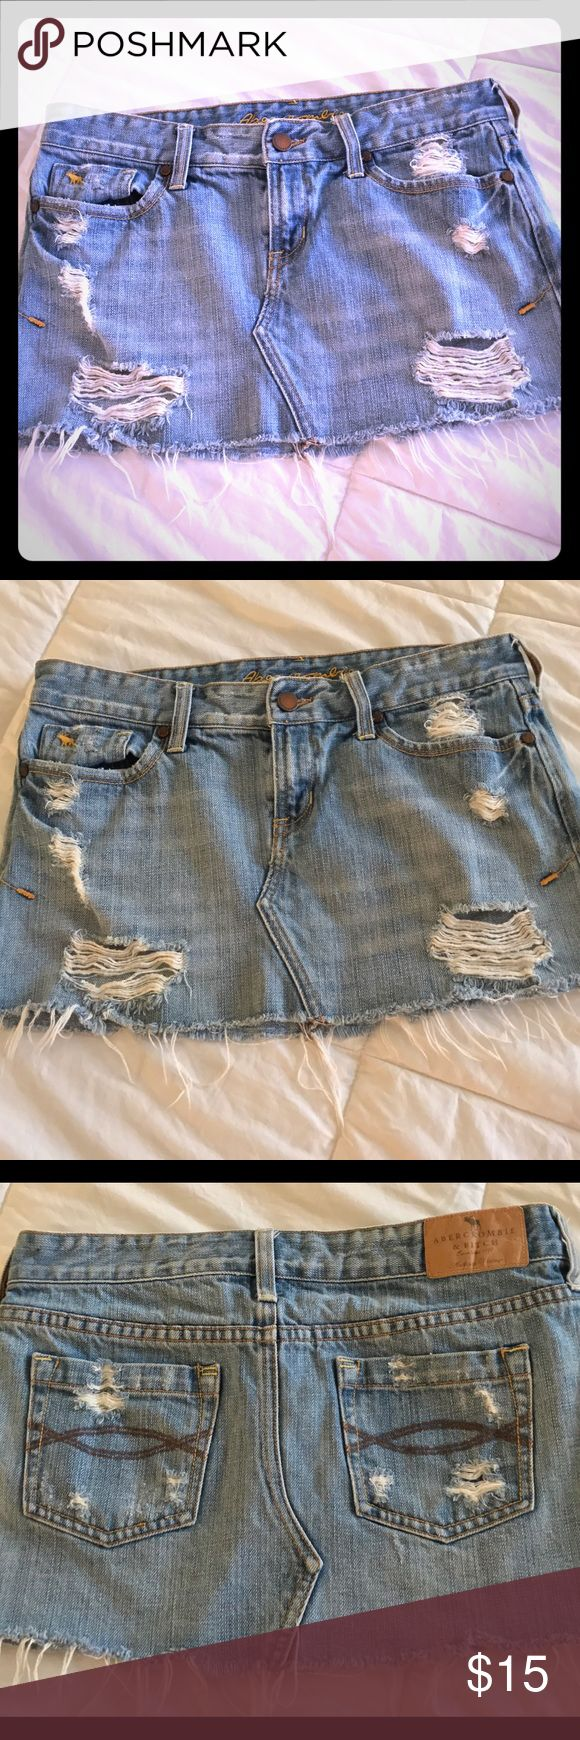 Distressed Abercrombie low waisted jean skirt Very cool low waisted mini jean skirt distressed by Abercrombie and fitch Abercrombie & Fitch Skirts Mini